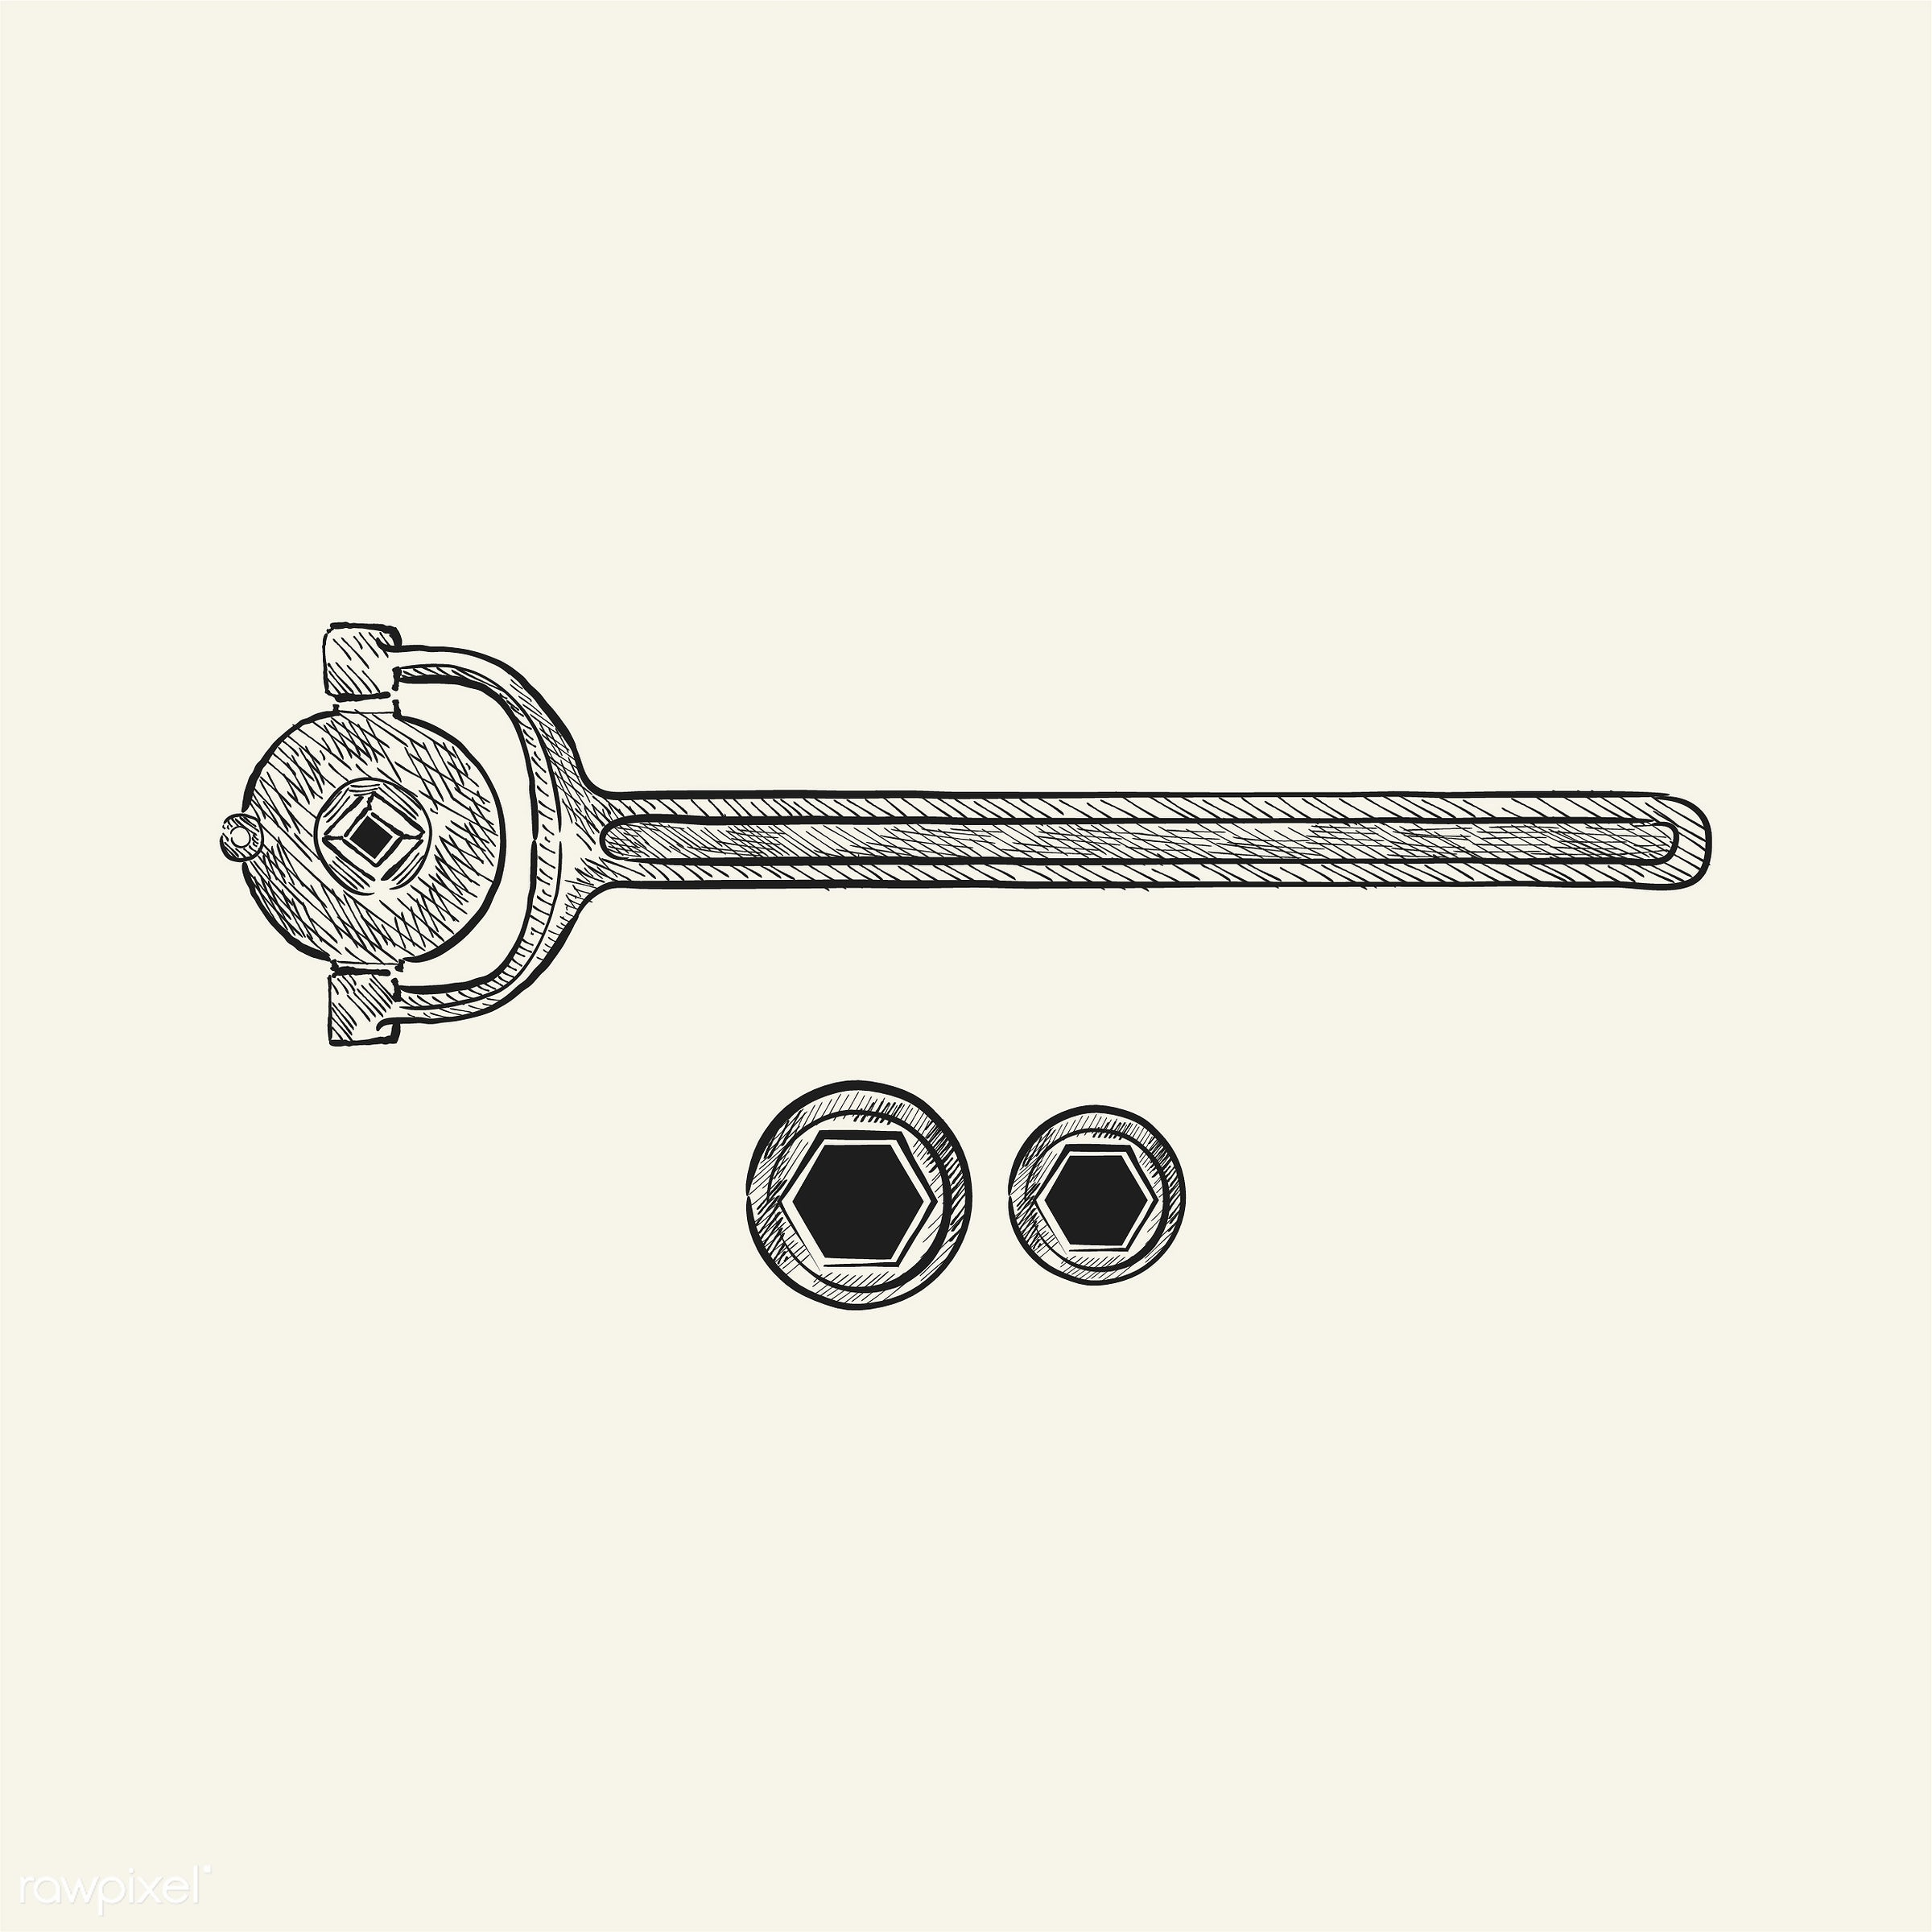 Vintage illustration of a wrench - antique, black, design, drawing, equipment, graphic, hand drawing, hand drawn, icon,...